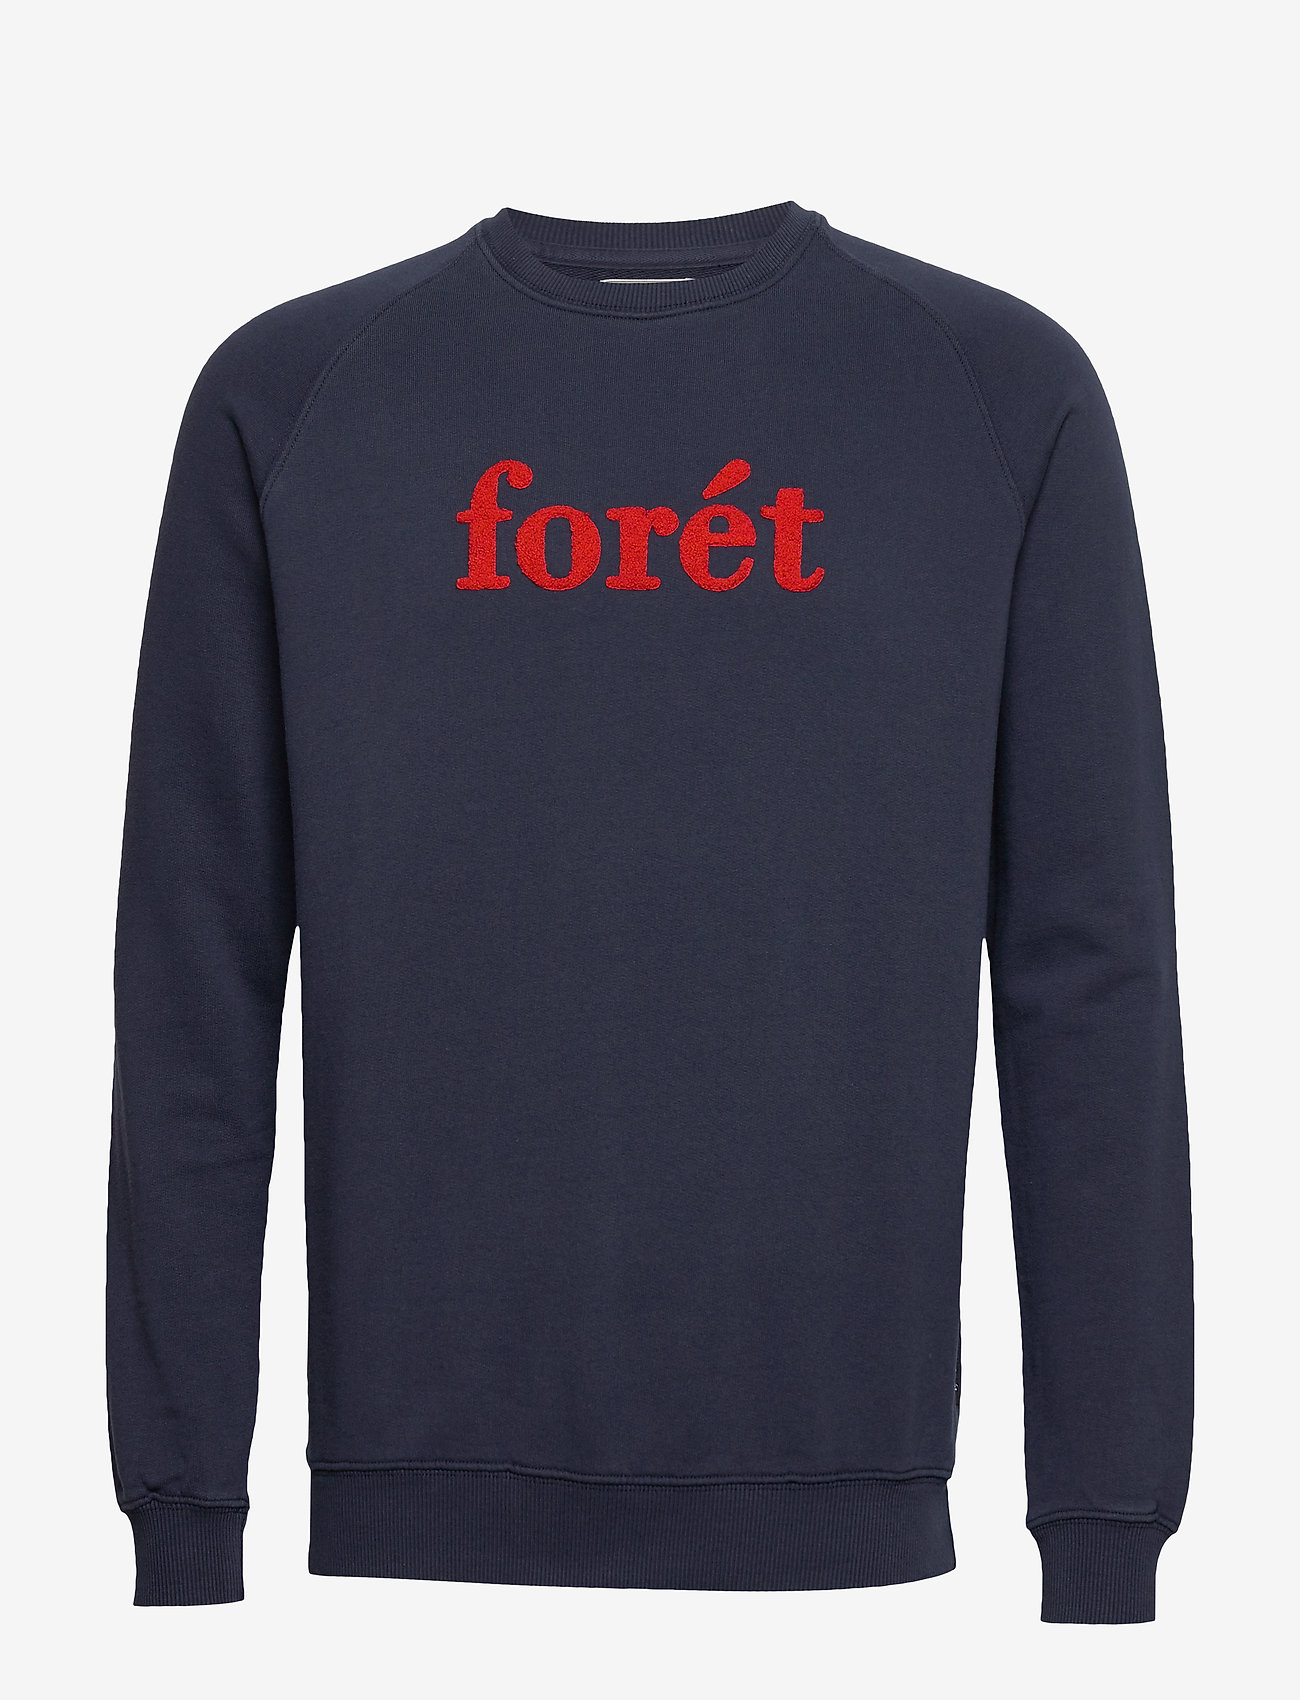 Forét - SPRUCE SWEATSHIRT - sweatshirts - midnight blue/red - 0